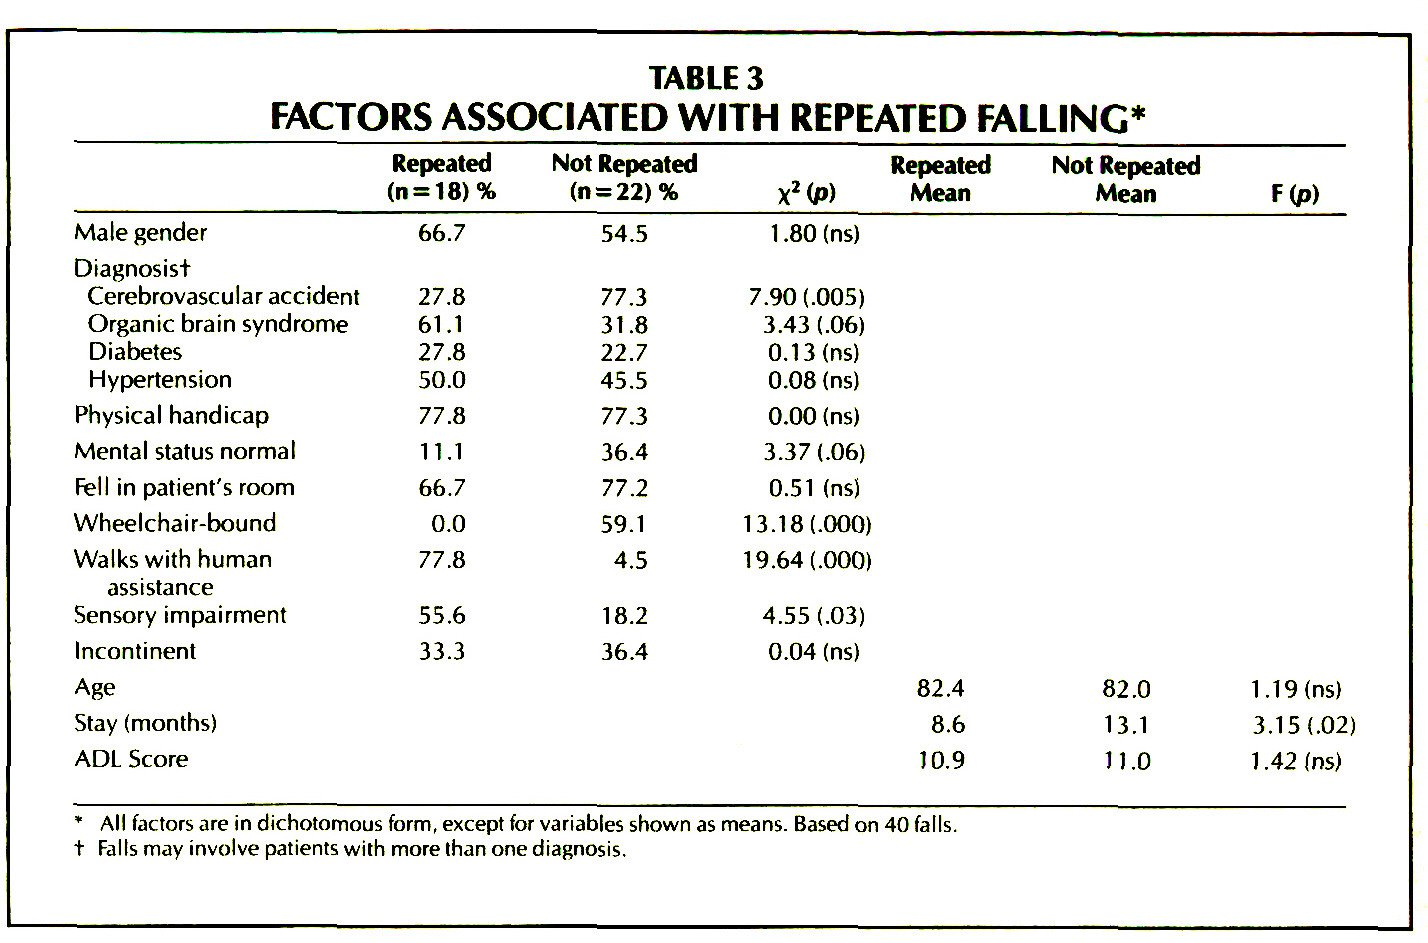 TABLE 3FACTORS ASSOCIATED WITH REPEATED FALLING*